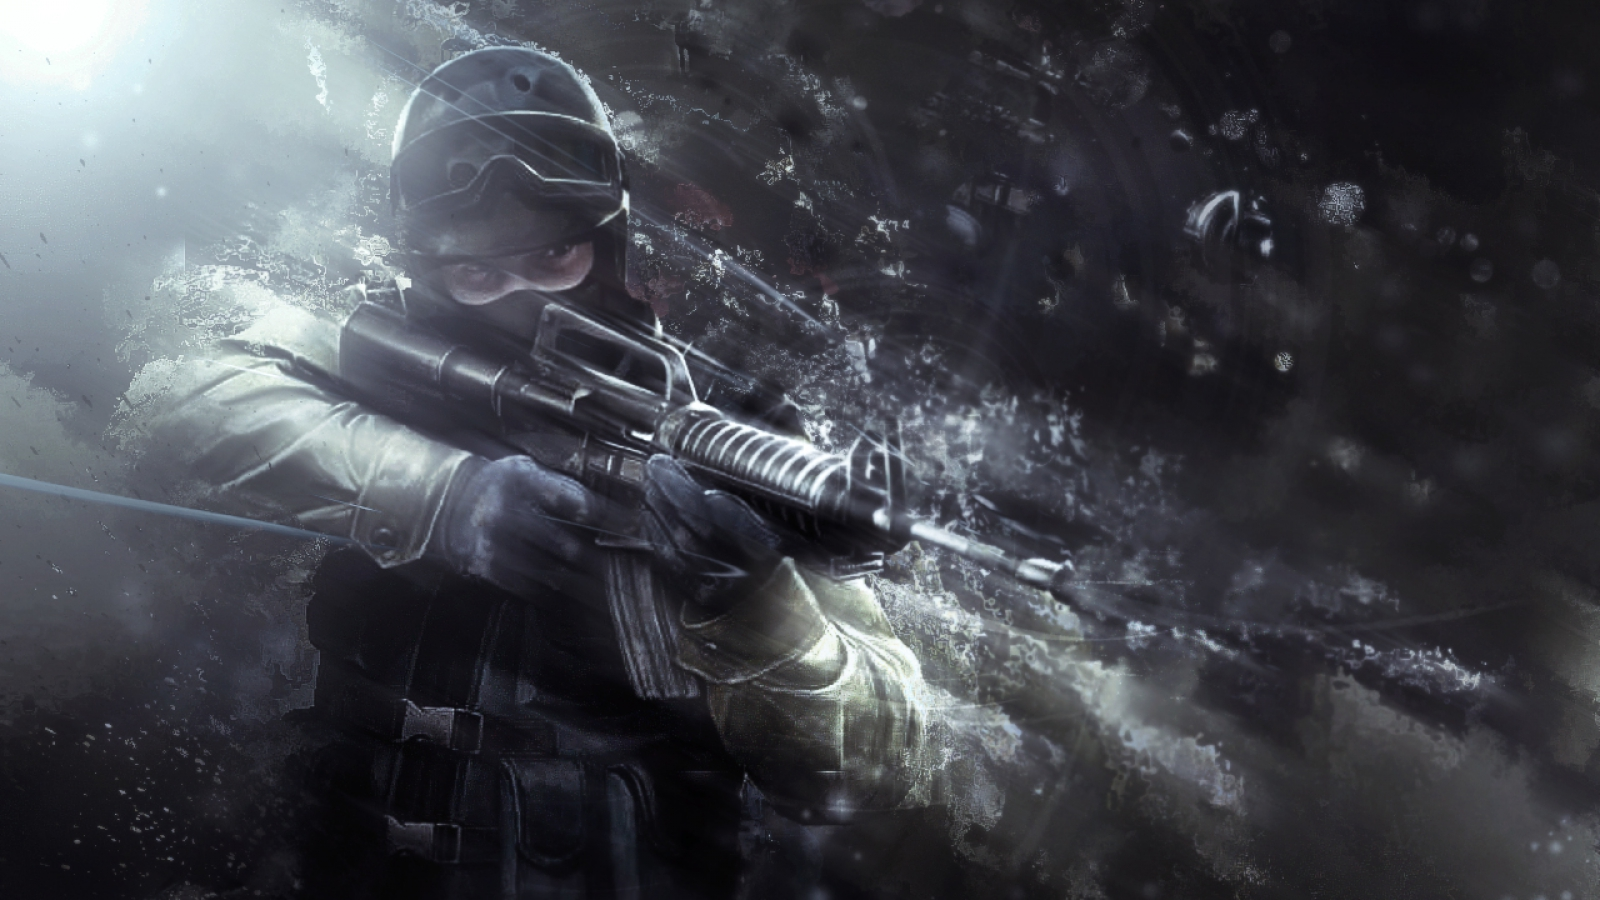 Counter strike source wallpaper and background image 1600x900 video game counter strike wallpaper voltagebd